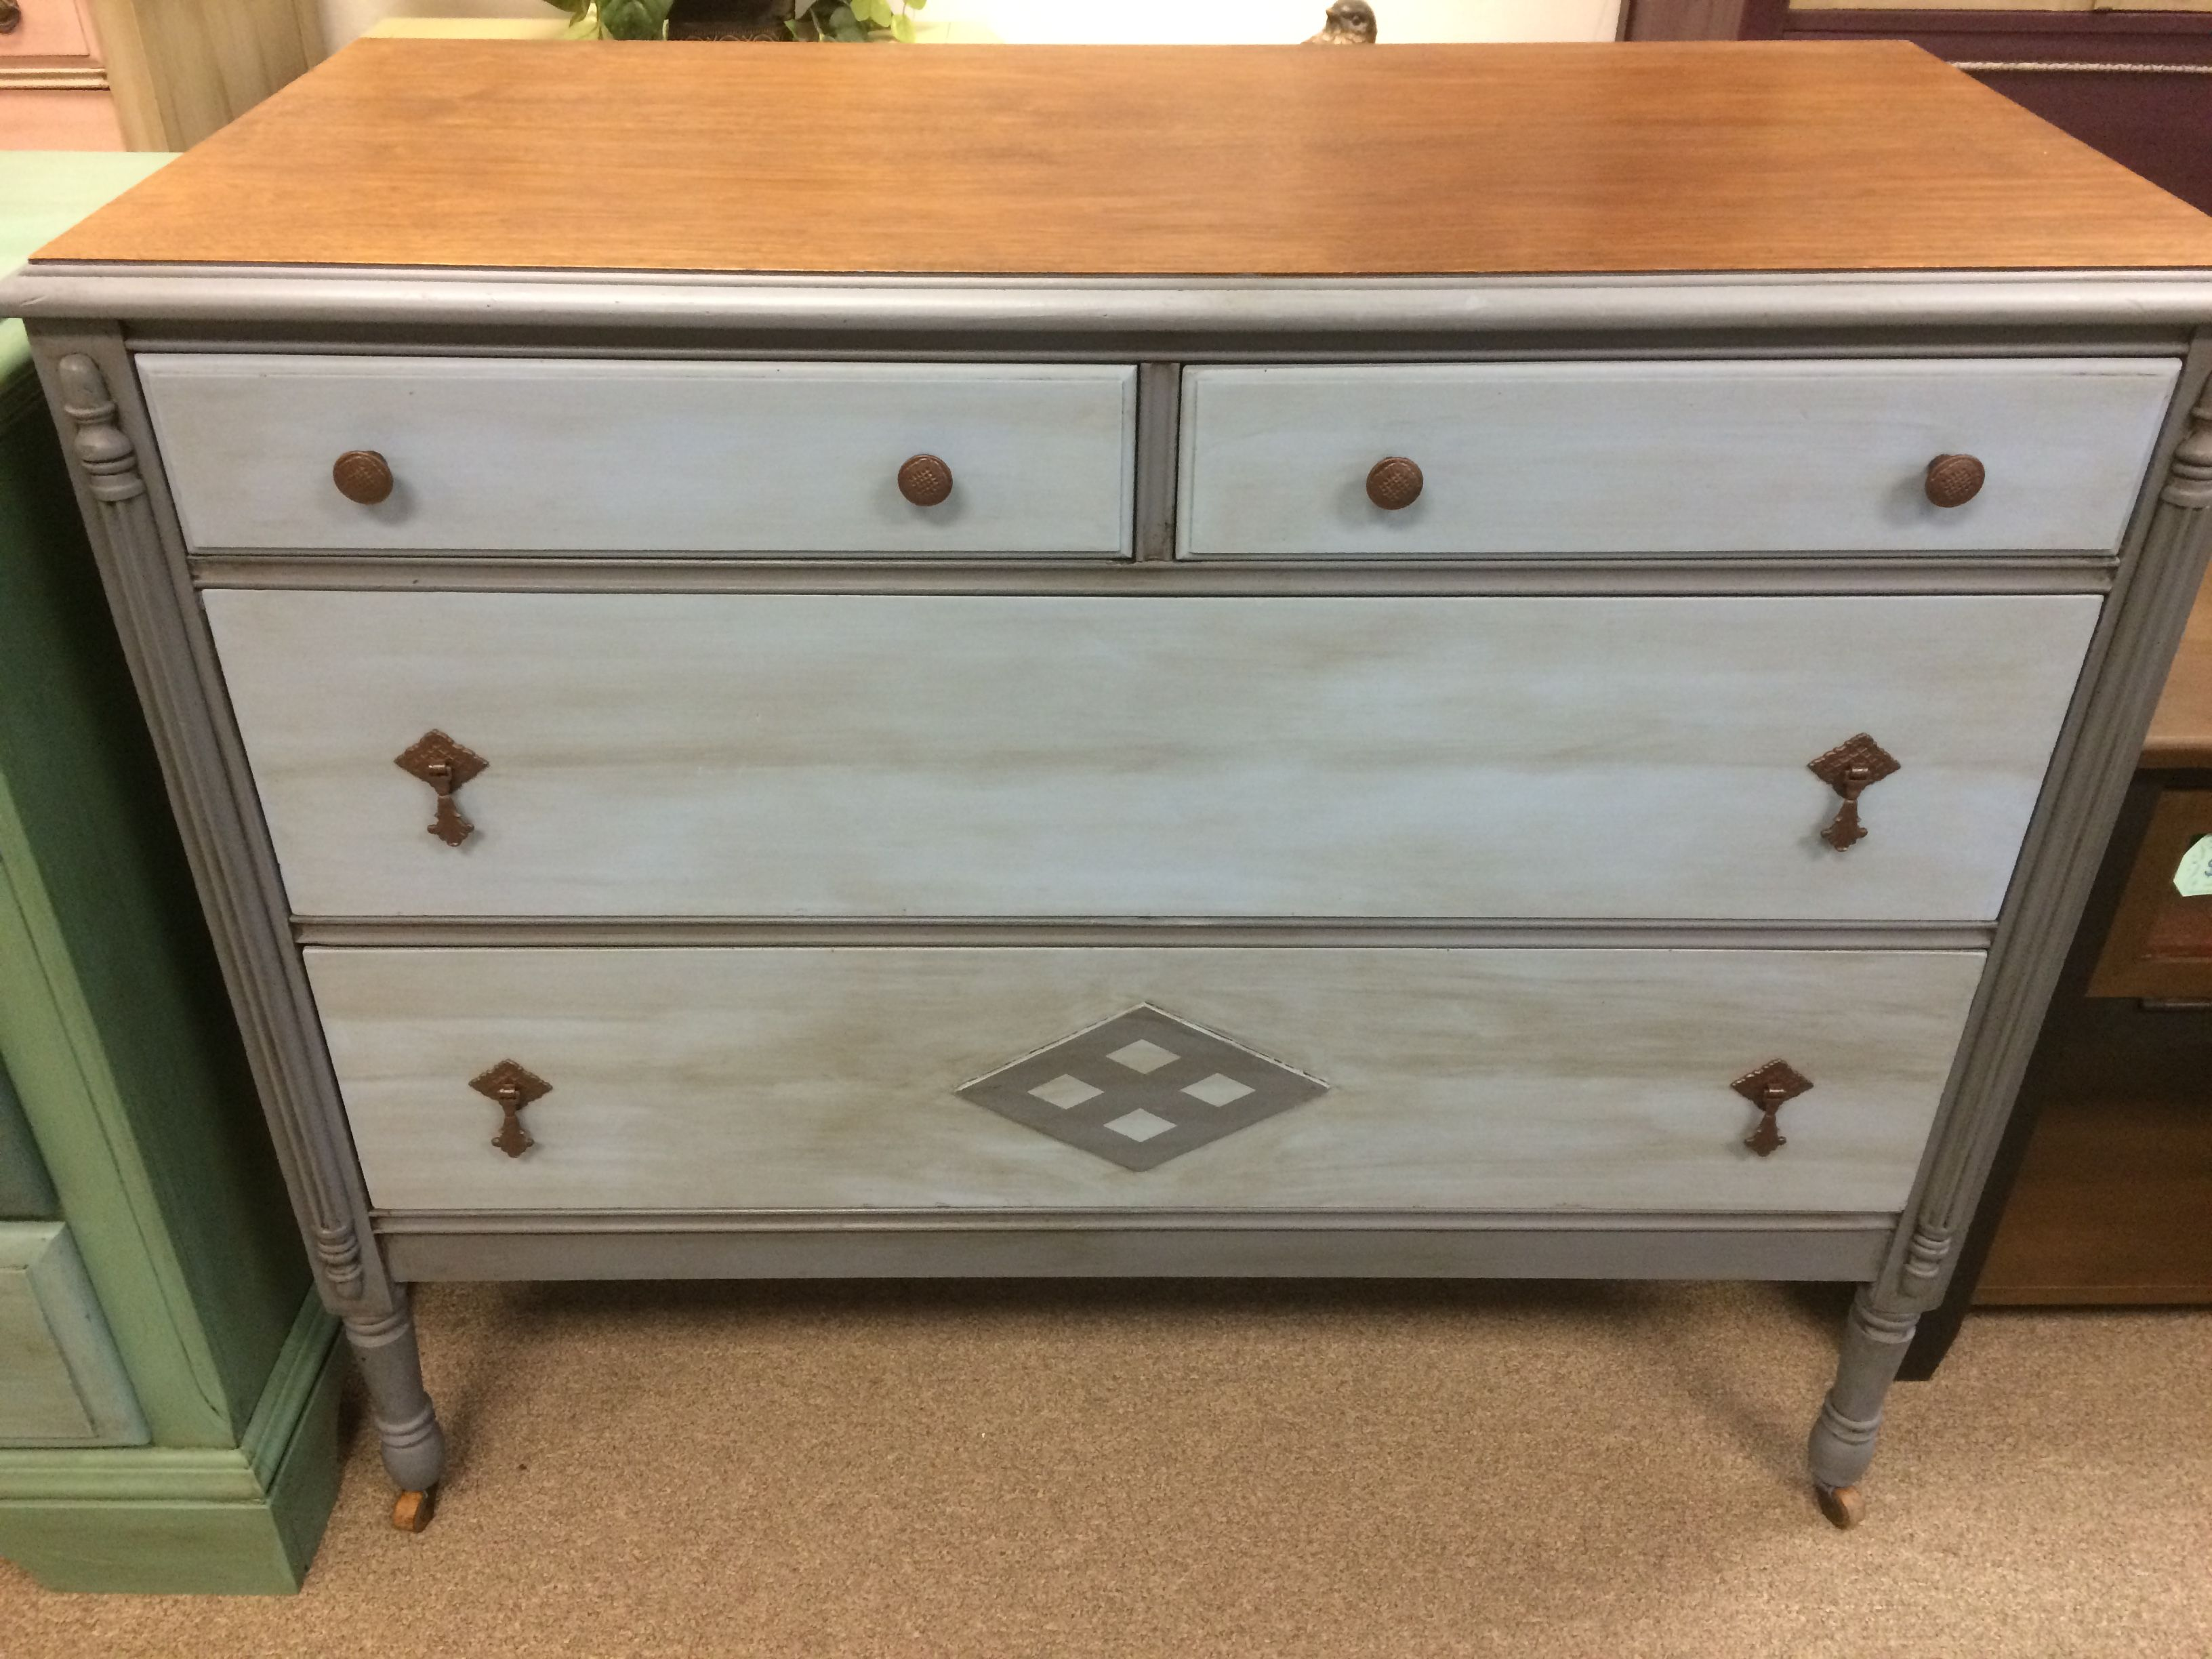 Antique Chalk Painted Dresser In Shades Of Blue Grey And Deep Waxed Top Was Left Natural Wood As It Chalk Paint Dresser Painted Dresser Chalk Paint Furniture [ 2448 x 3264 Pixel ]